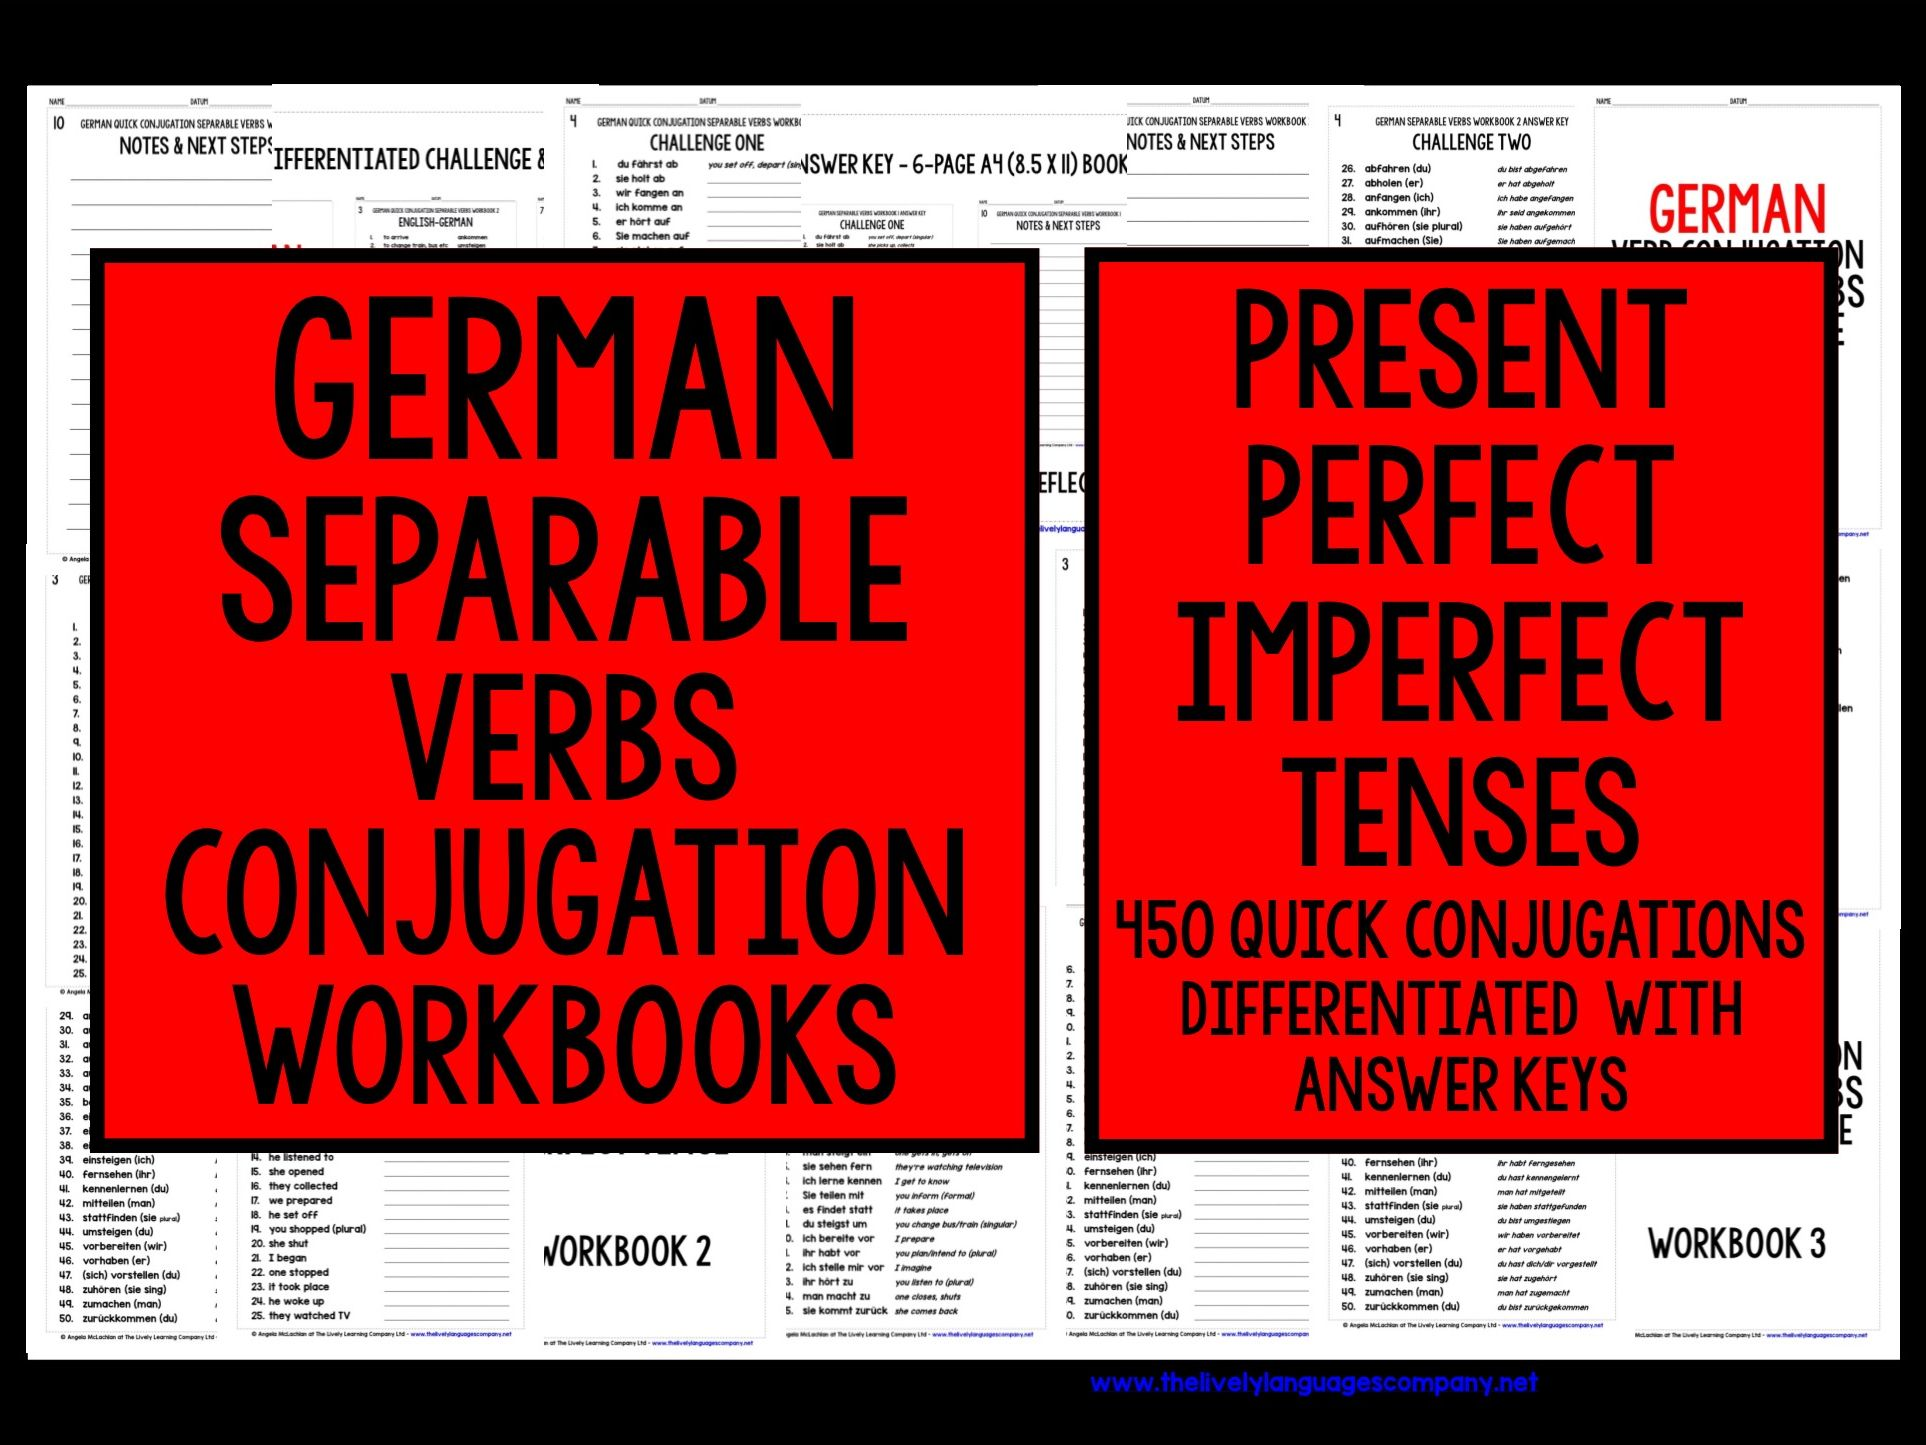 GERMAN SEPARABLE VERBS REVISION